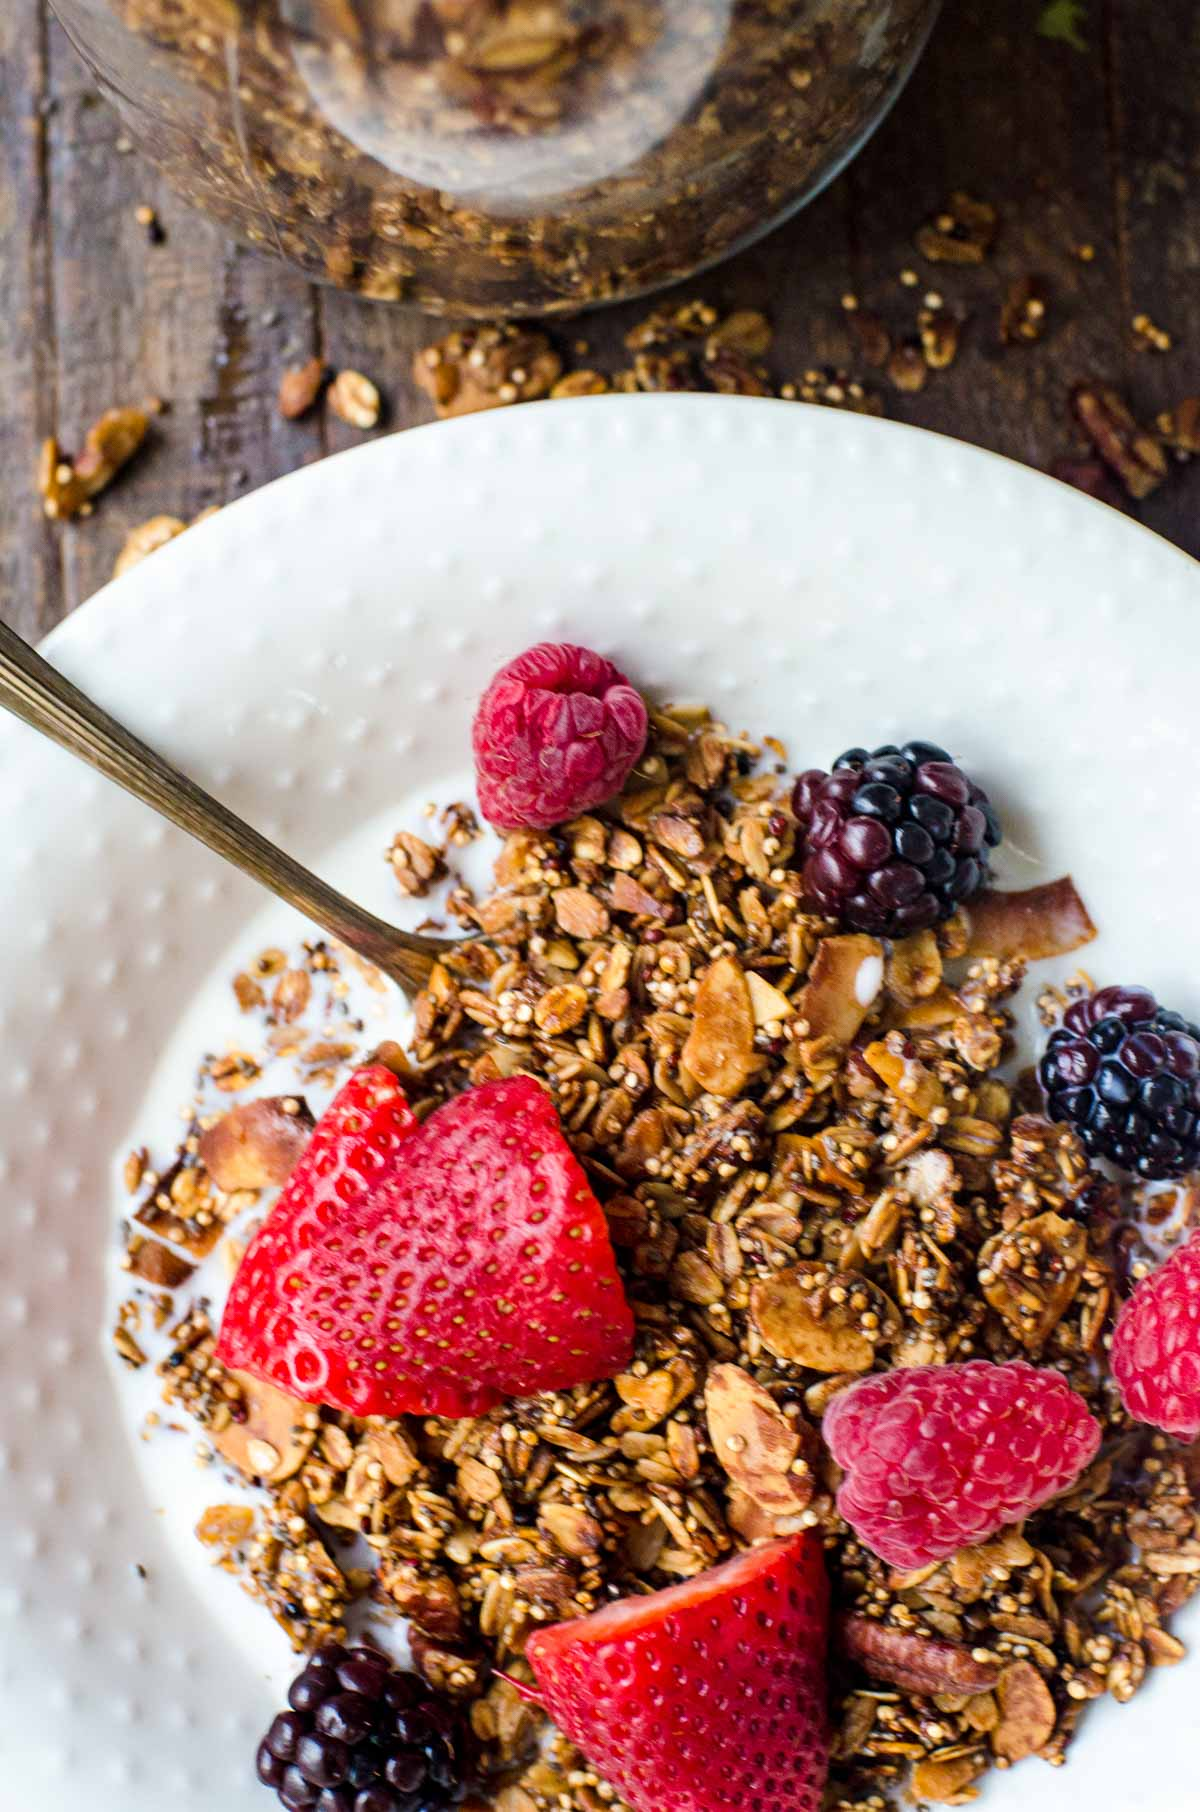 Granola and fresh berries in a white bowl with milk.